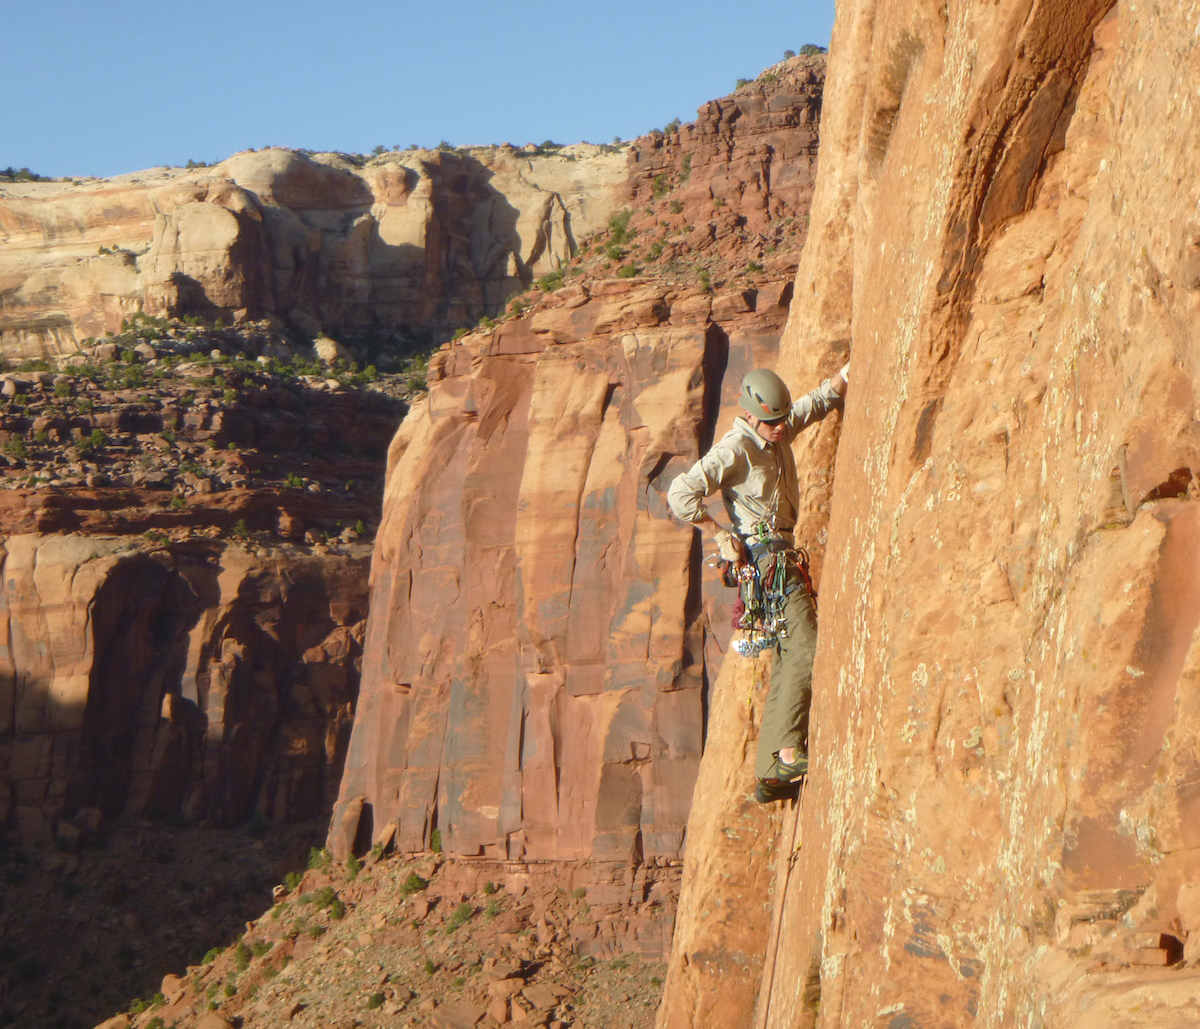 John Tucker plugs gear on Evening Ecstacy (5.9+) in Indian Creek, 2015. [Photo] Derek Franz